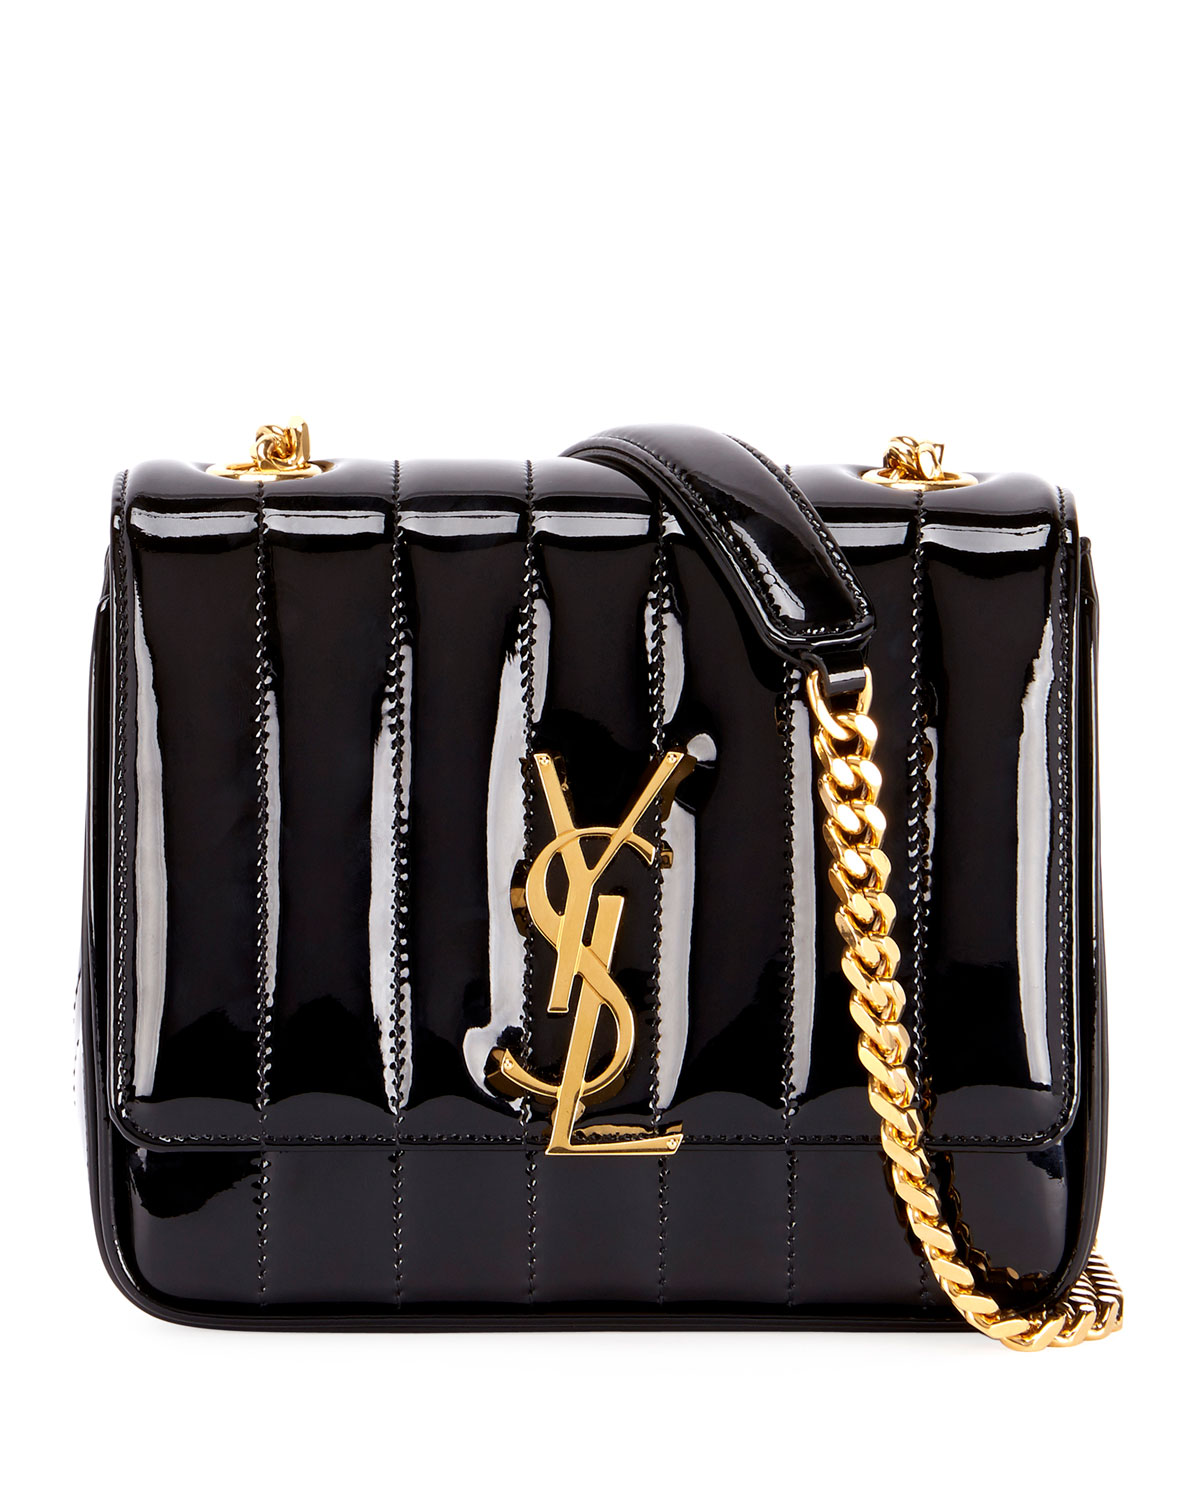 a9c946cac1e Saint Laurent Vicky Monogram YSL Small Quilted Patent Leather Crossbody Bag